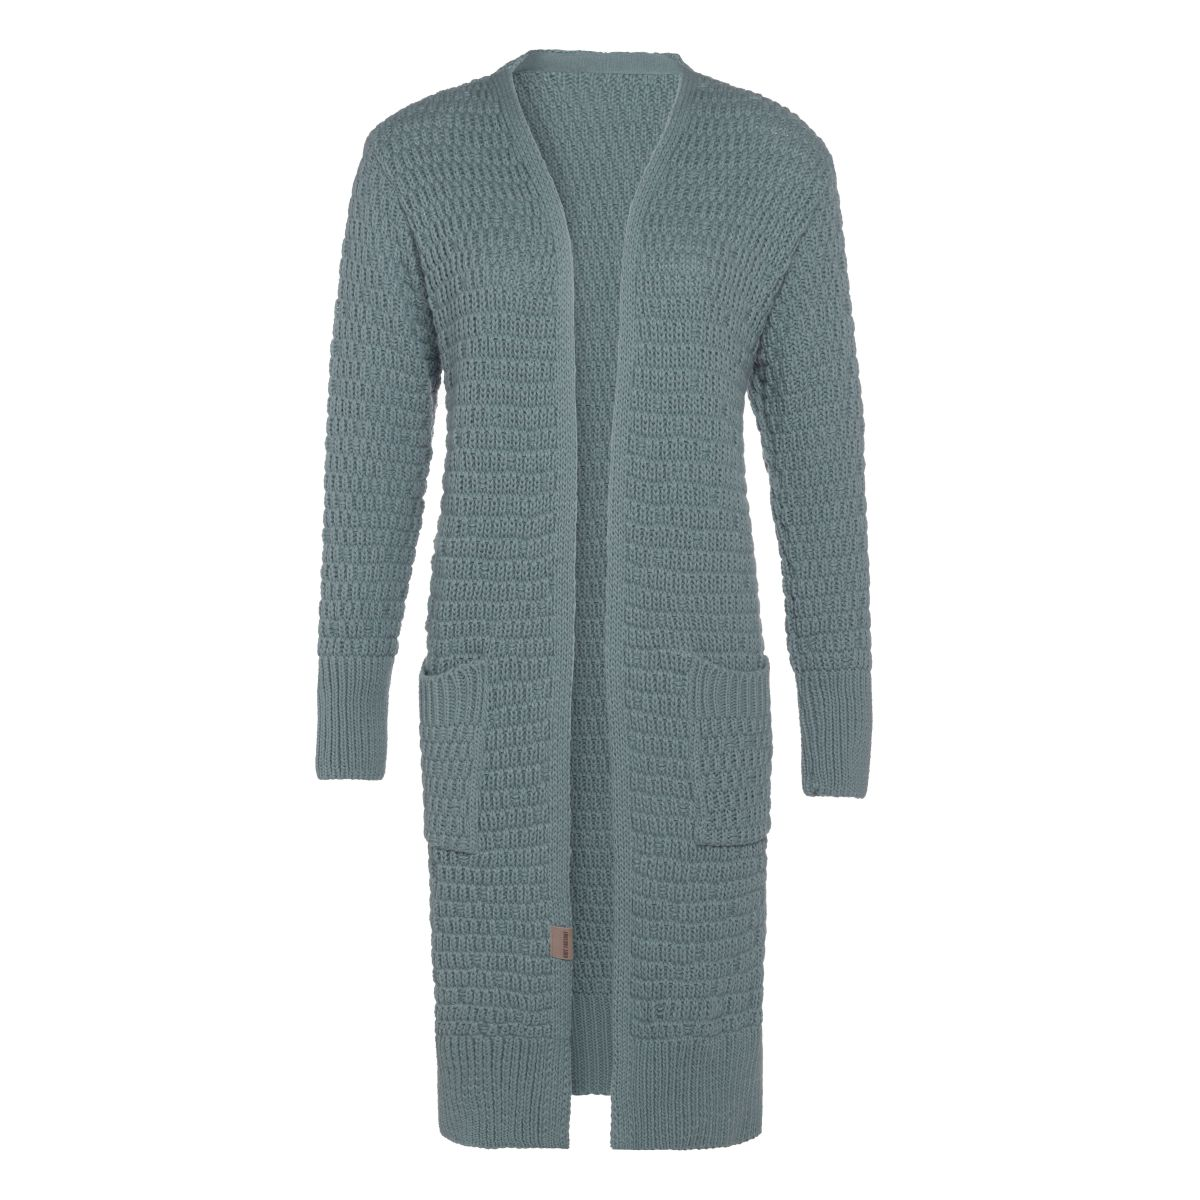 jaida long knitted cardigan stone green 4042 with side pockets